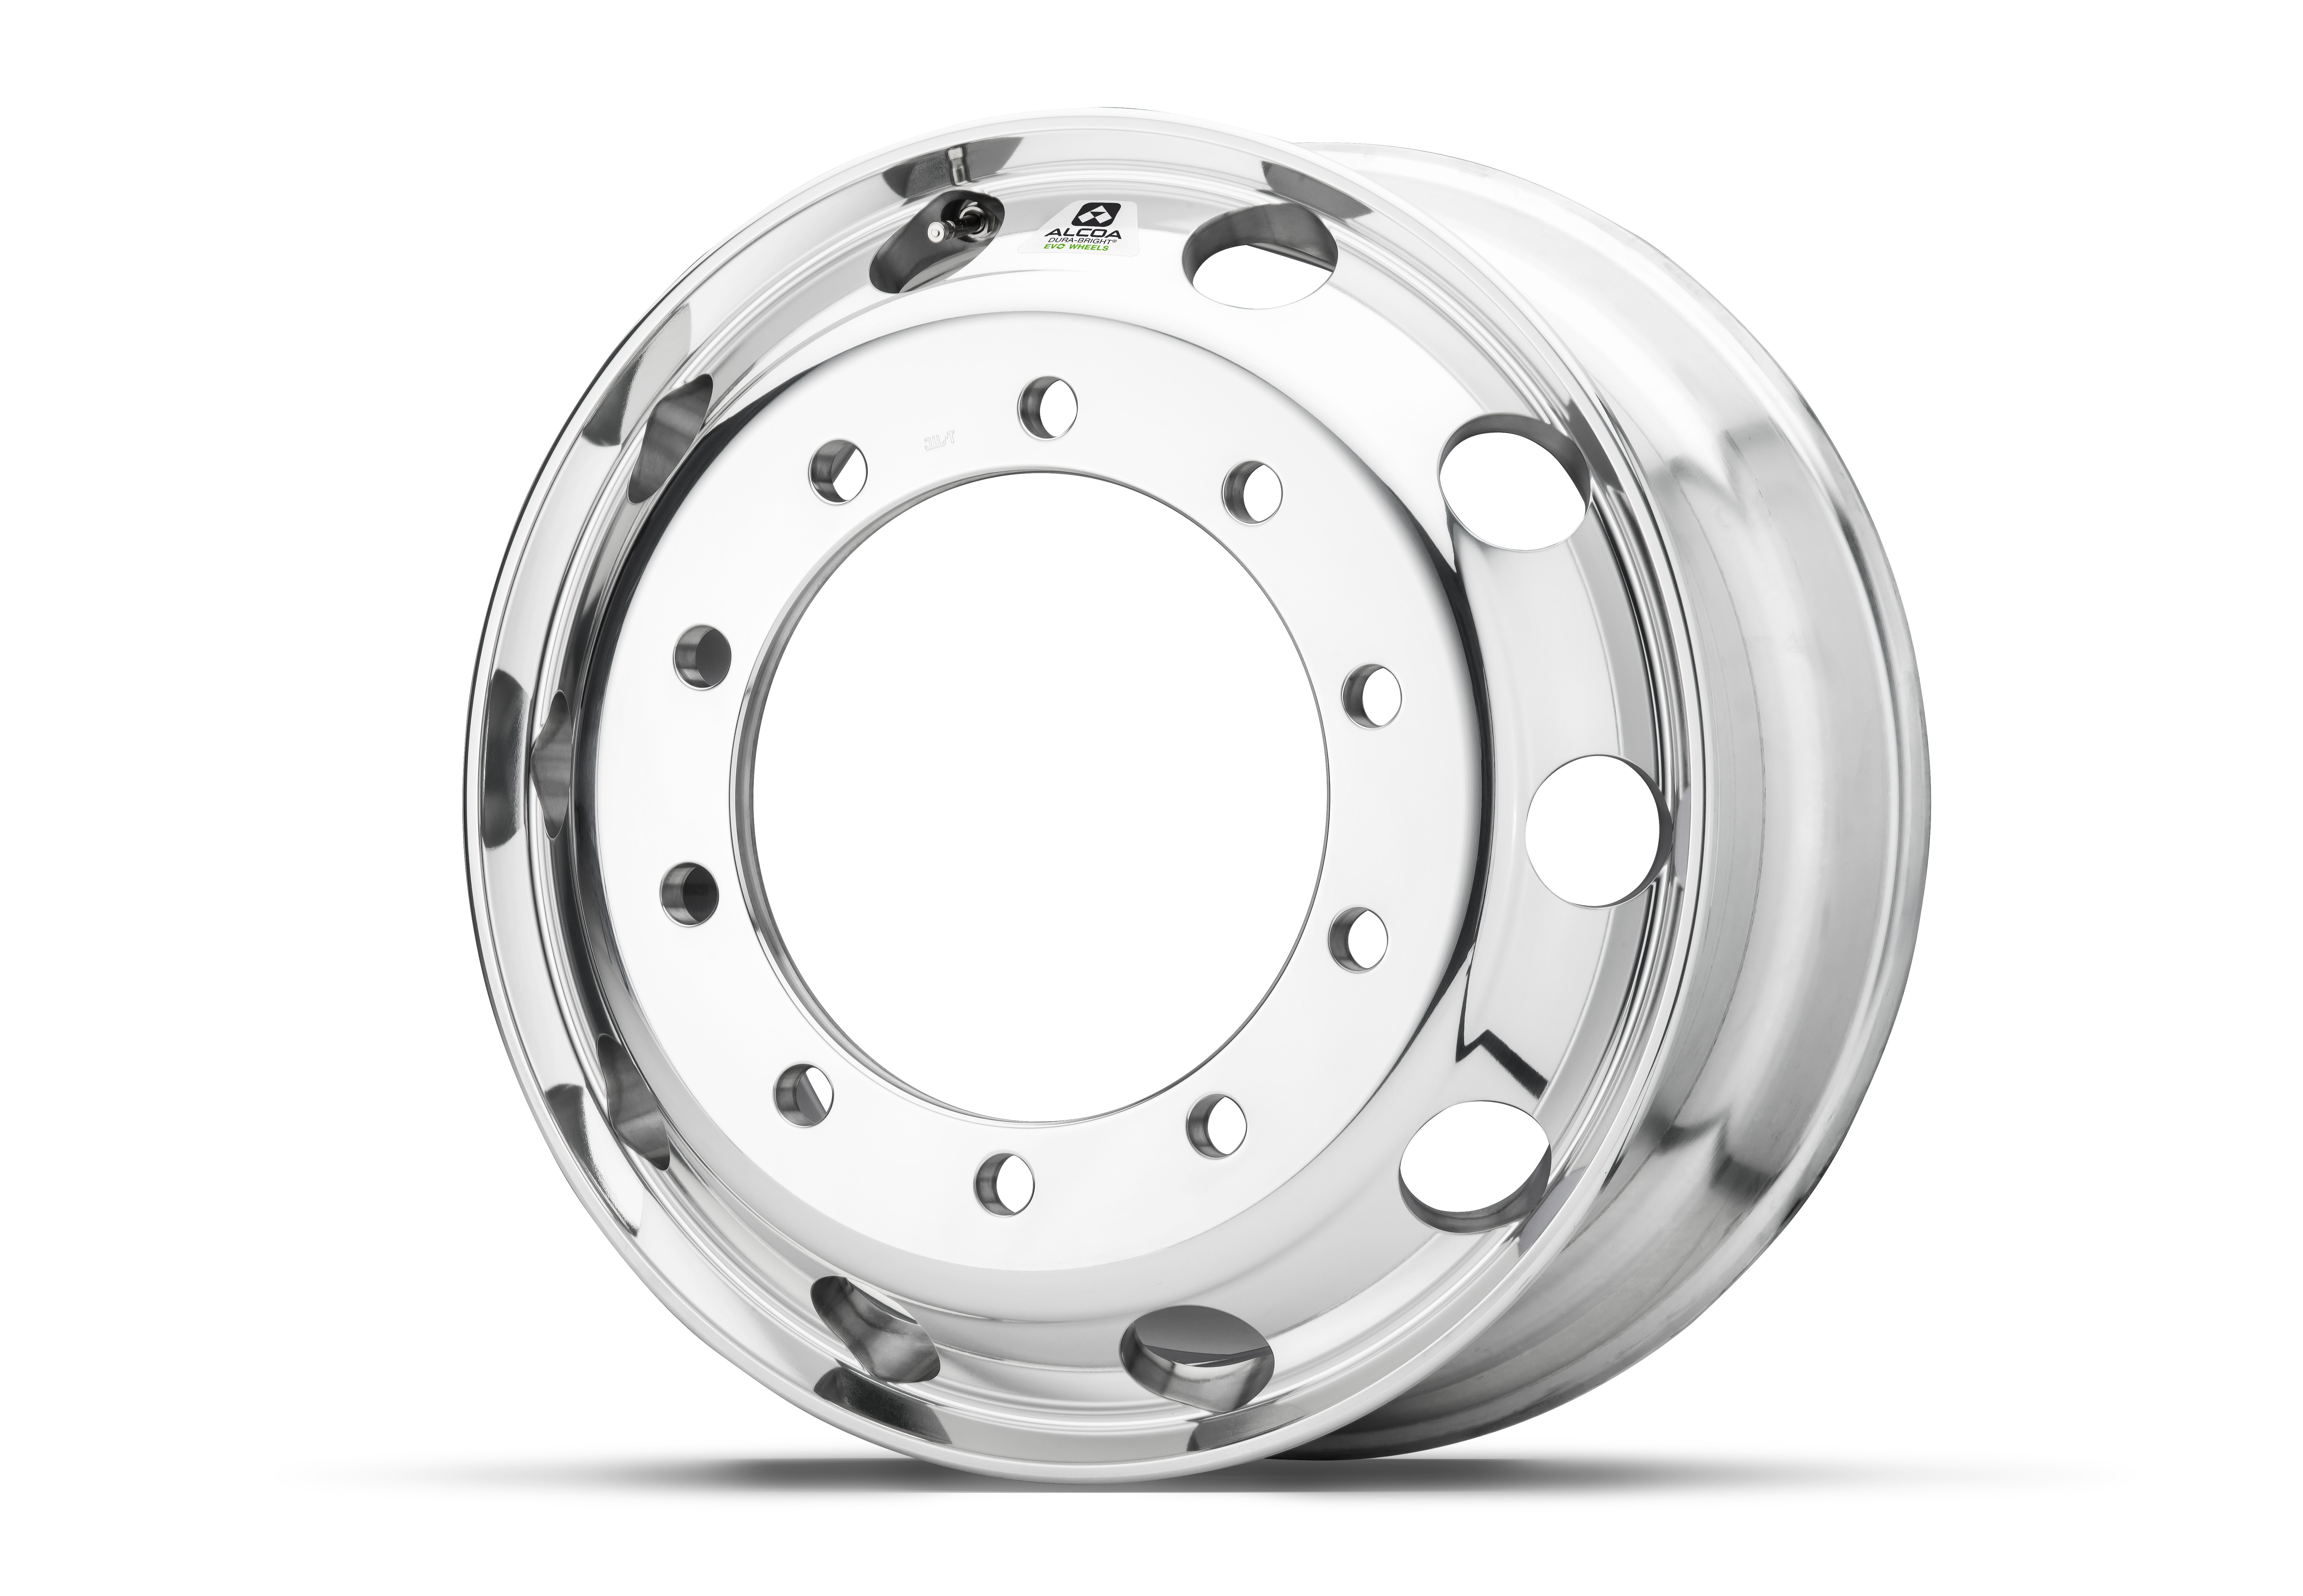 Alcoa has rolled out its most durable, easy-to-maintain commercial truck wheel, known as the Dura-Bright® EVO wheel, which stands up stronger against the weather, road salts, grime and cleaning agents that can corrode and dull standard commercial truck wheels. (Photo: Business Wire)